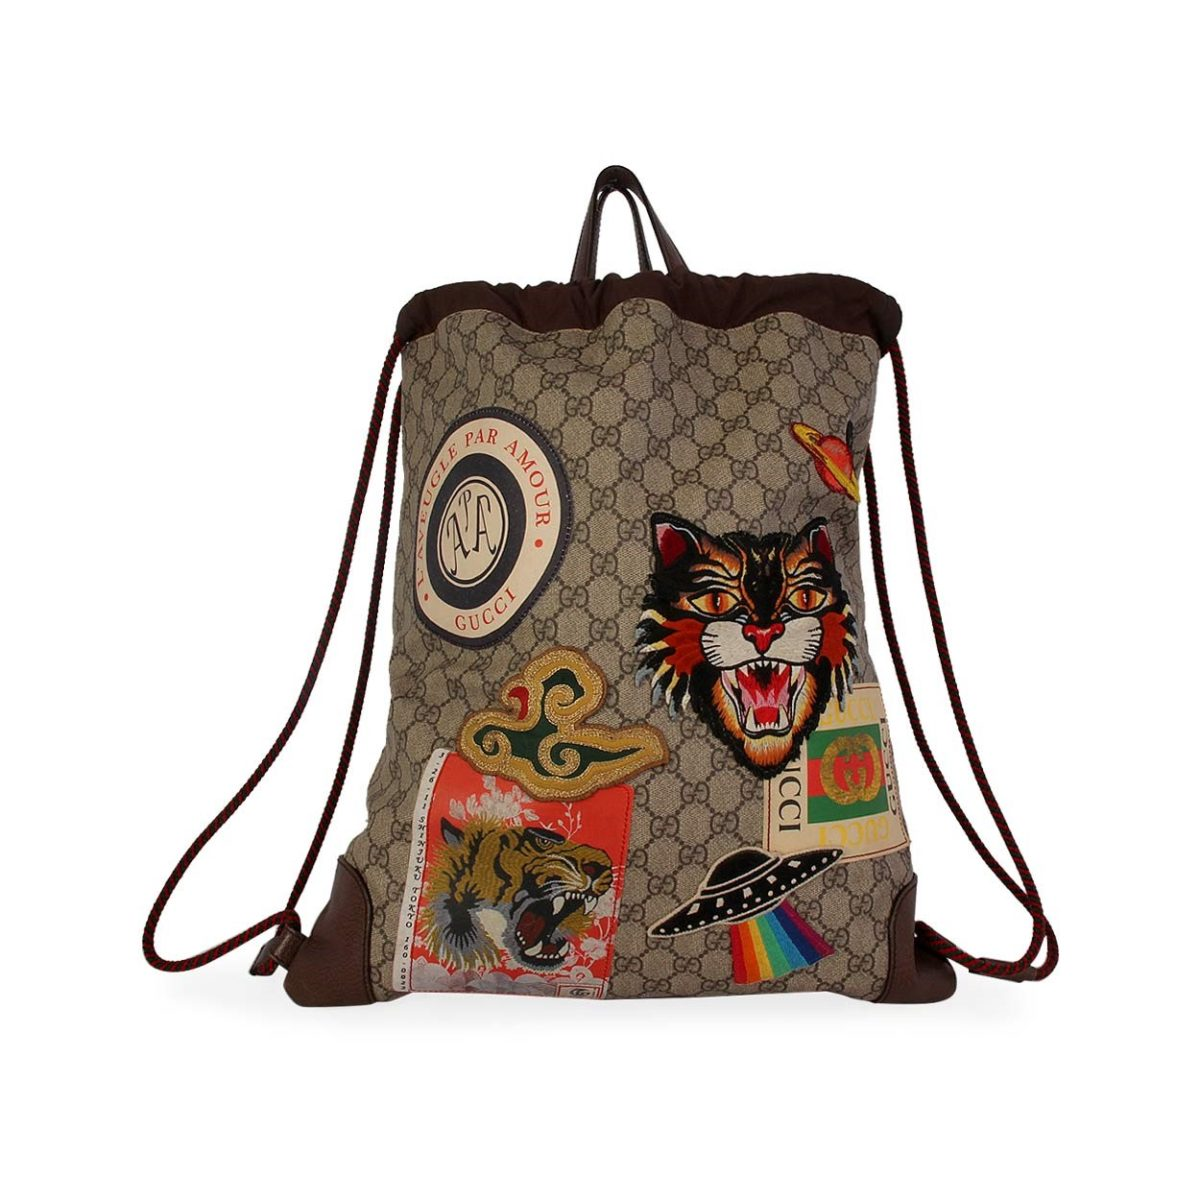 f413cbed88c6 GUCCI Soft GG Supreme Courrier Drawstring Backpack